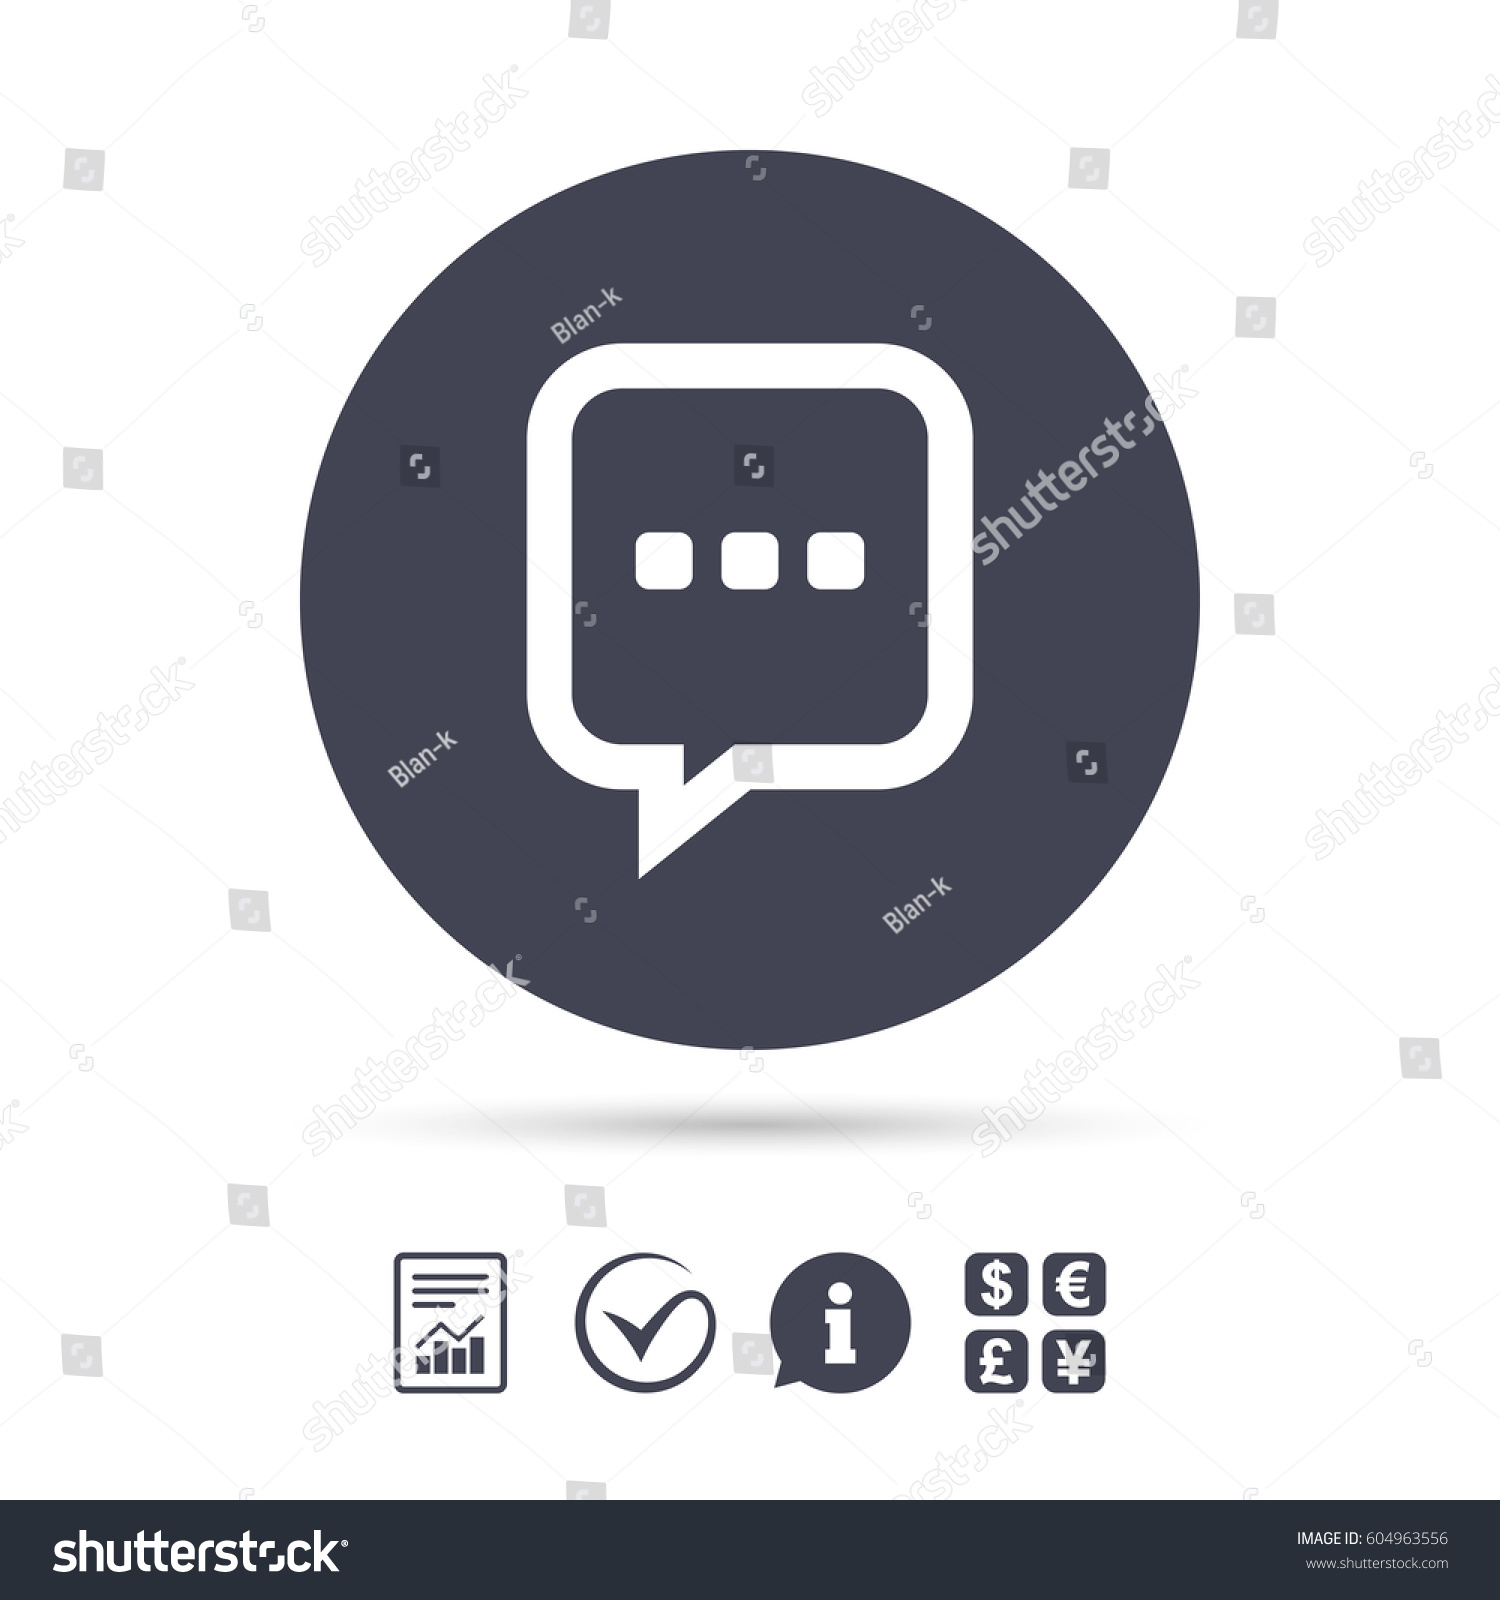 Chat sign icon speech bubble three stock vector 604963556 speech bubble with three dots symbol communication chat bubble report biocorpaavc